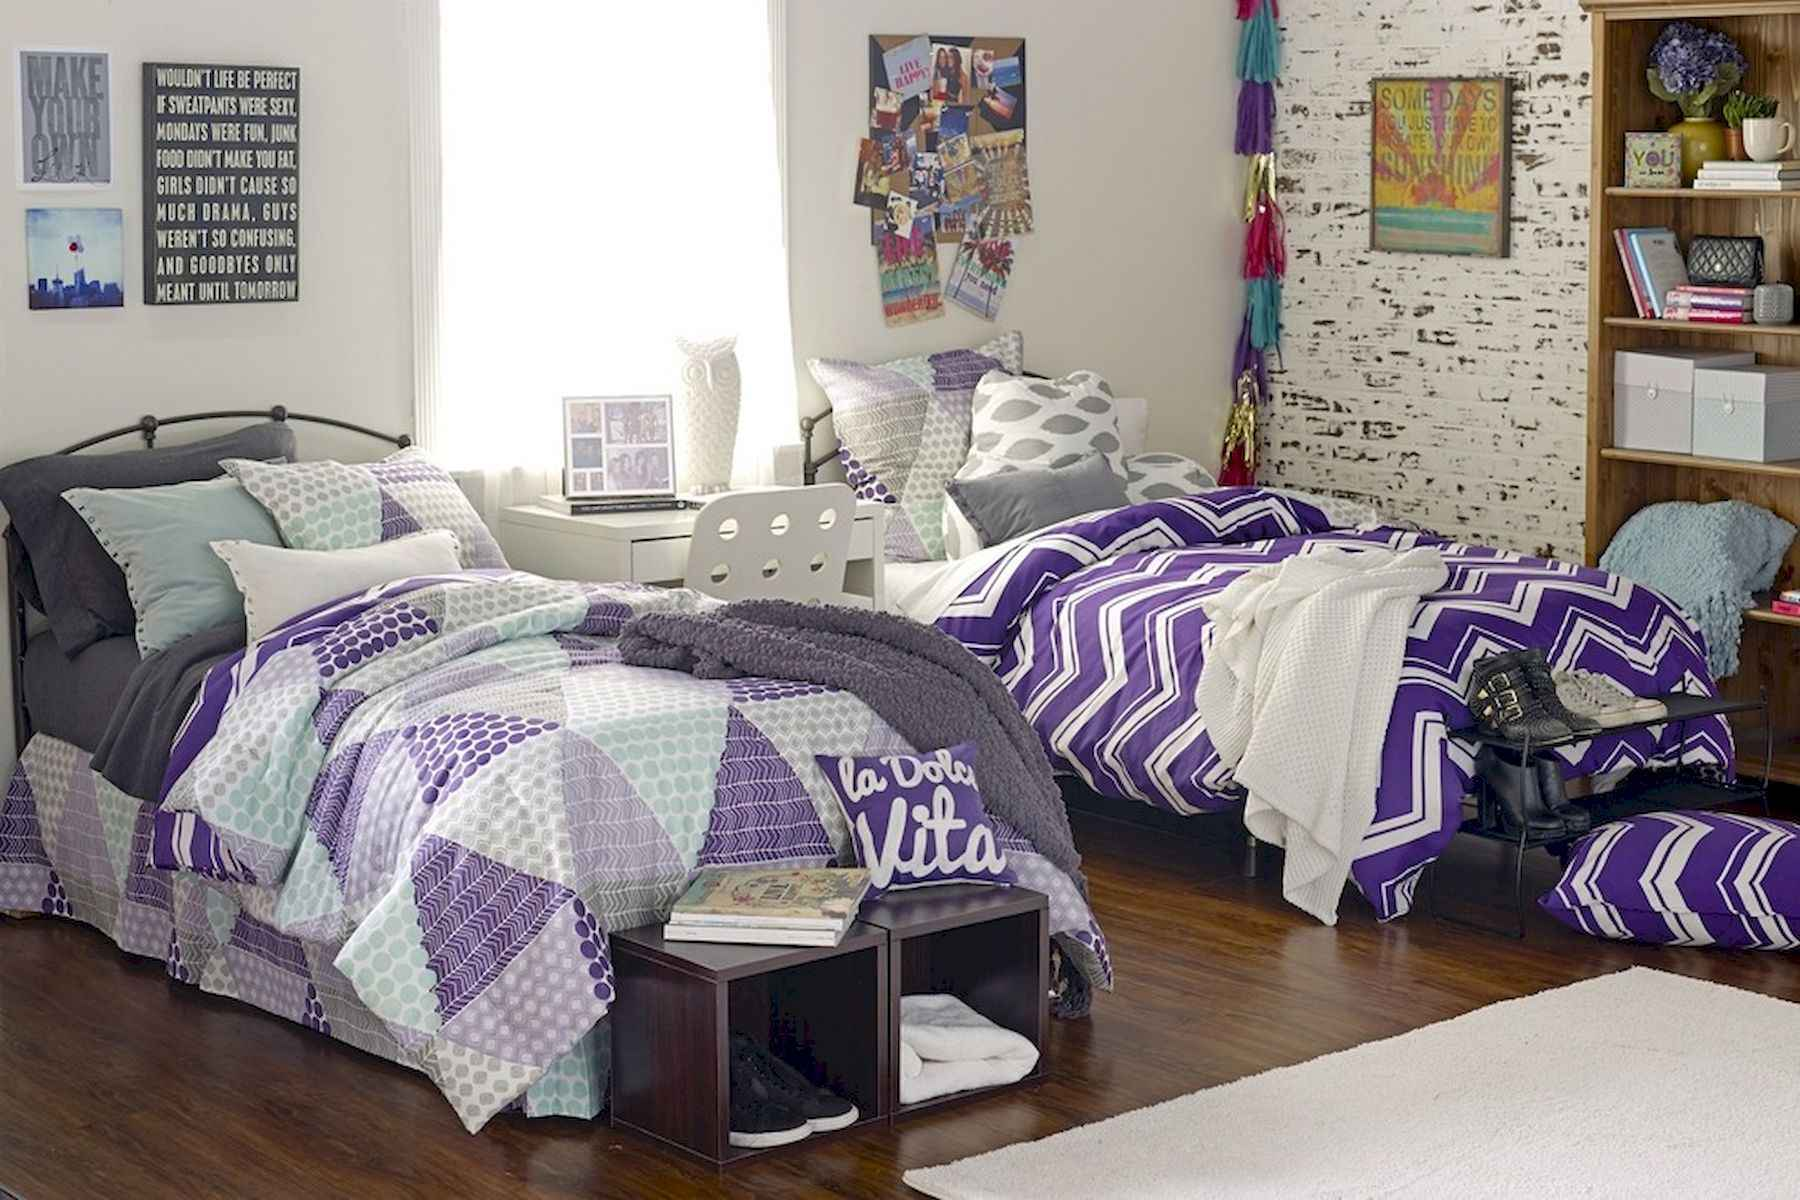 60 Gorgeous College Dorm Room Decorating Ideas And Makeover (16)